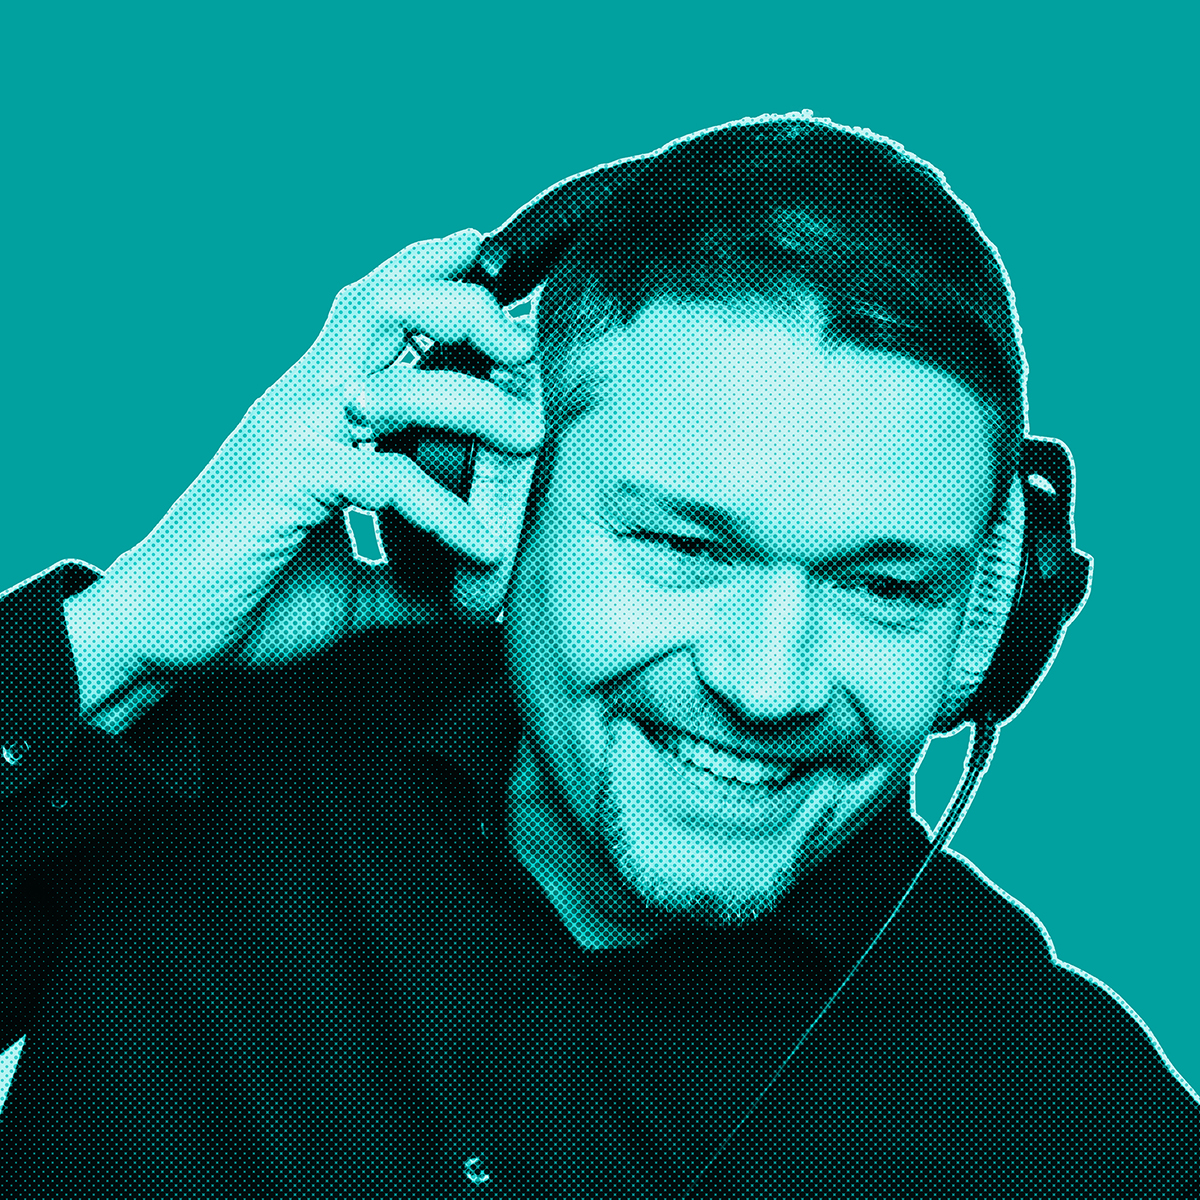 Turquoise-filtered picture of man smiling and wearing headphones, holding them with his right hand